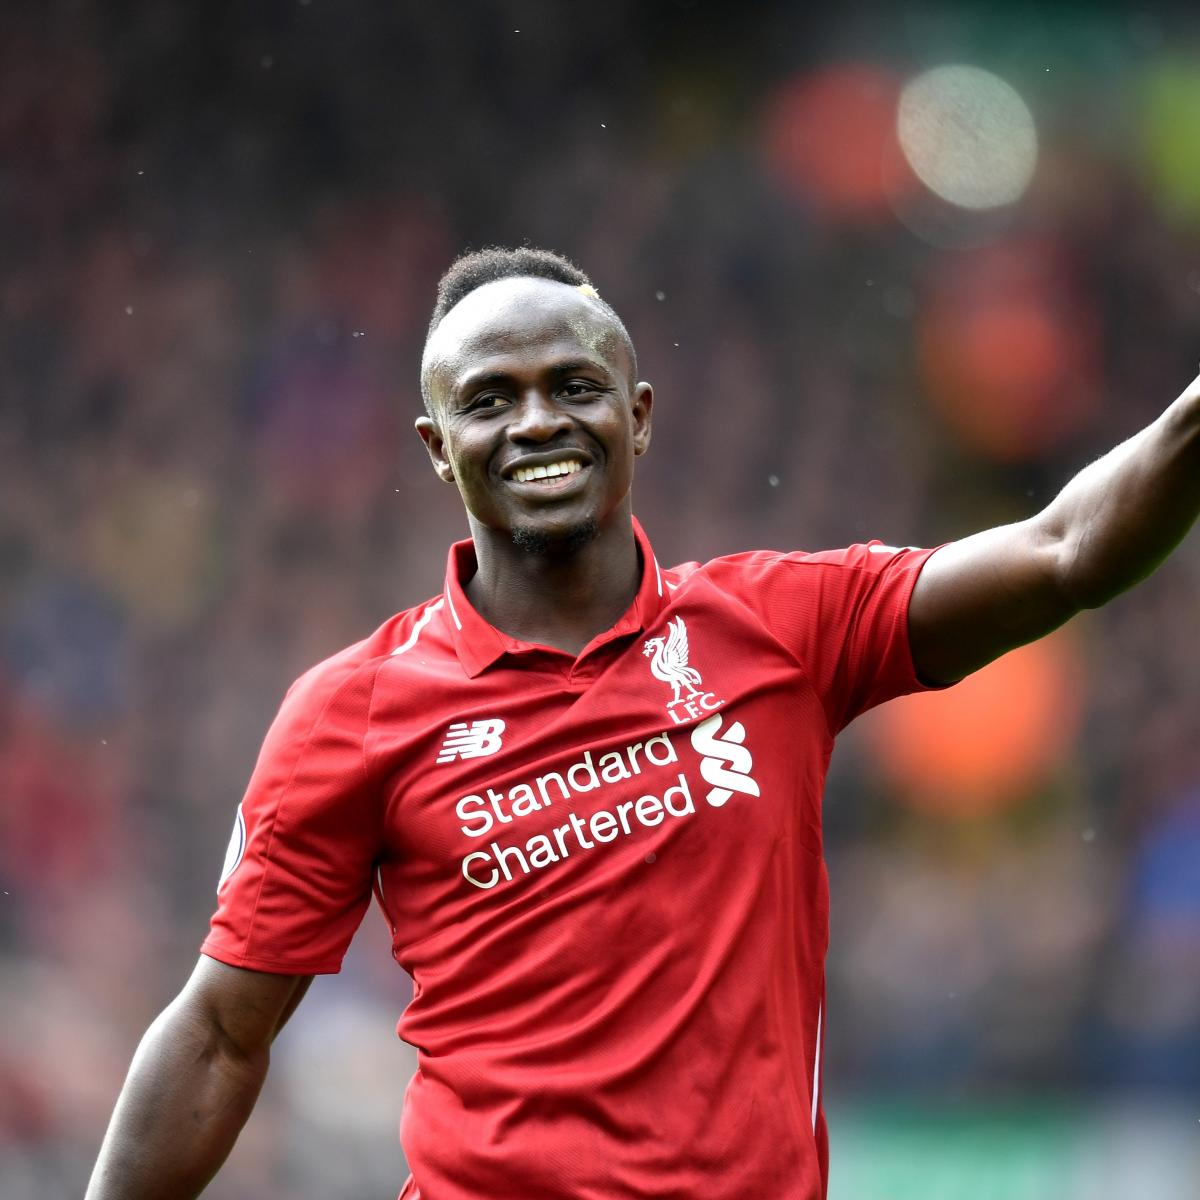 Champions League 2019 Round Of 16 Leg 2 Live Stream Tv: Fulham Vs. Liverpool: Odds, Preview, Live Stream, TV Info